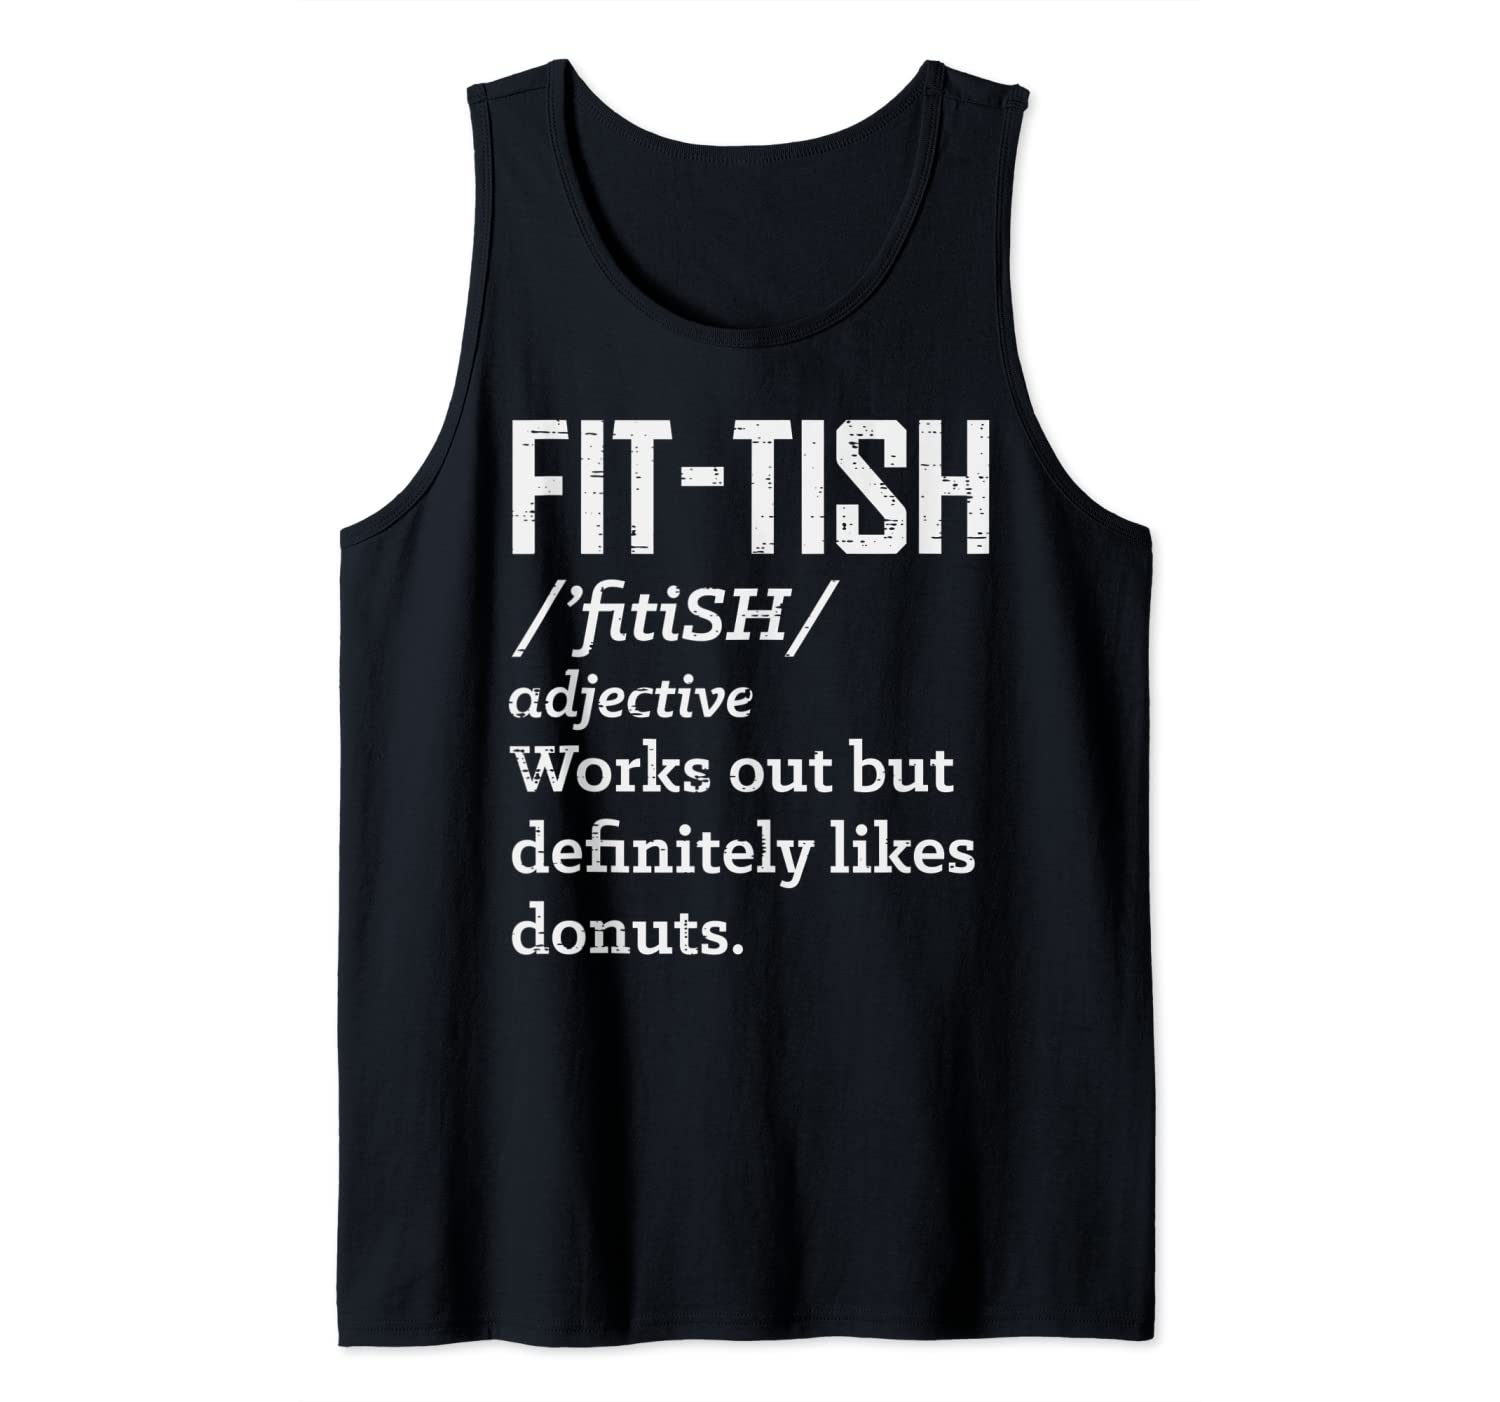 Fit Definition Dictionary Likes Donuts Funny Workout Gift Tank Top